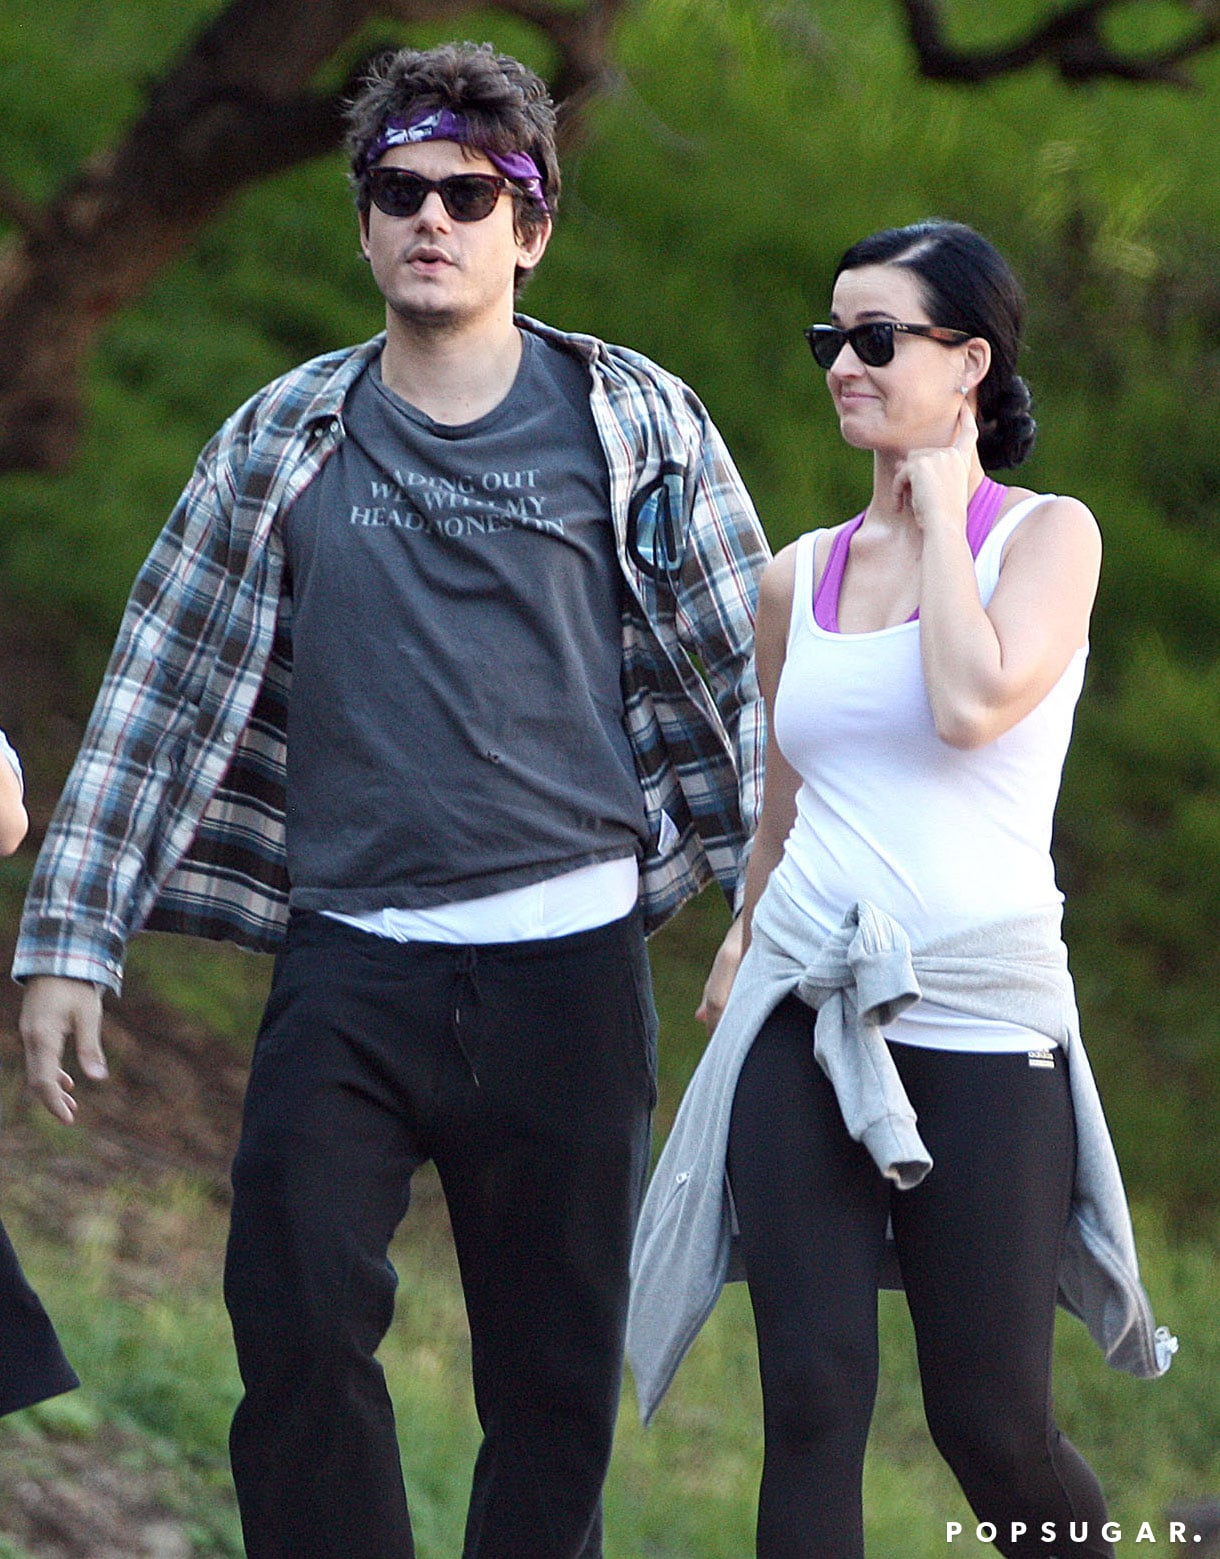 Katy Perry and John Mayer wore workout gear.